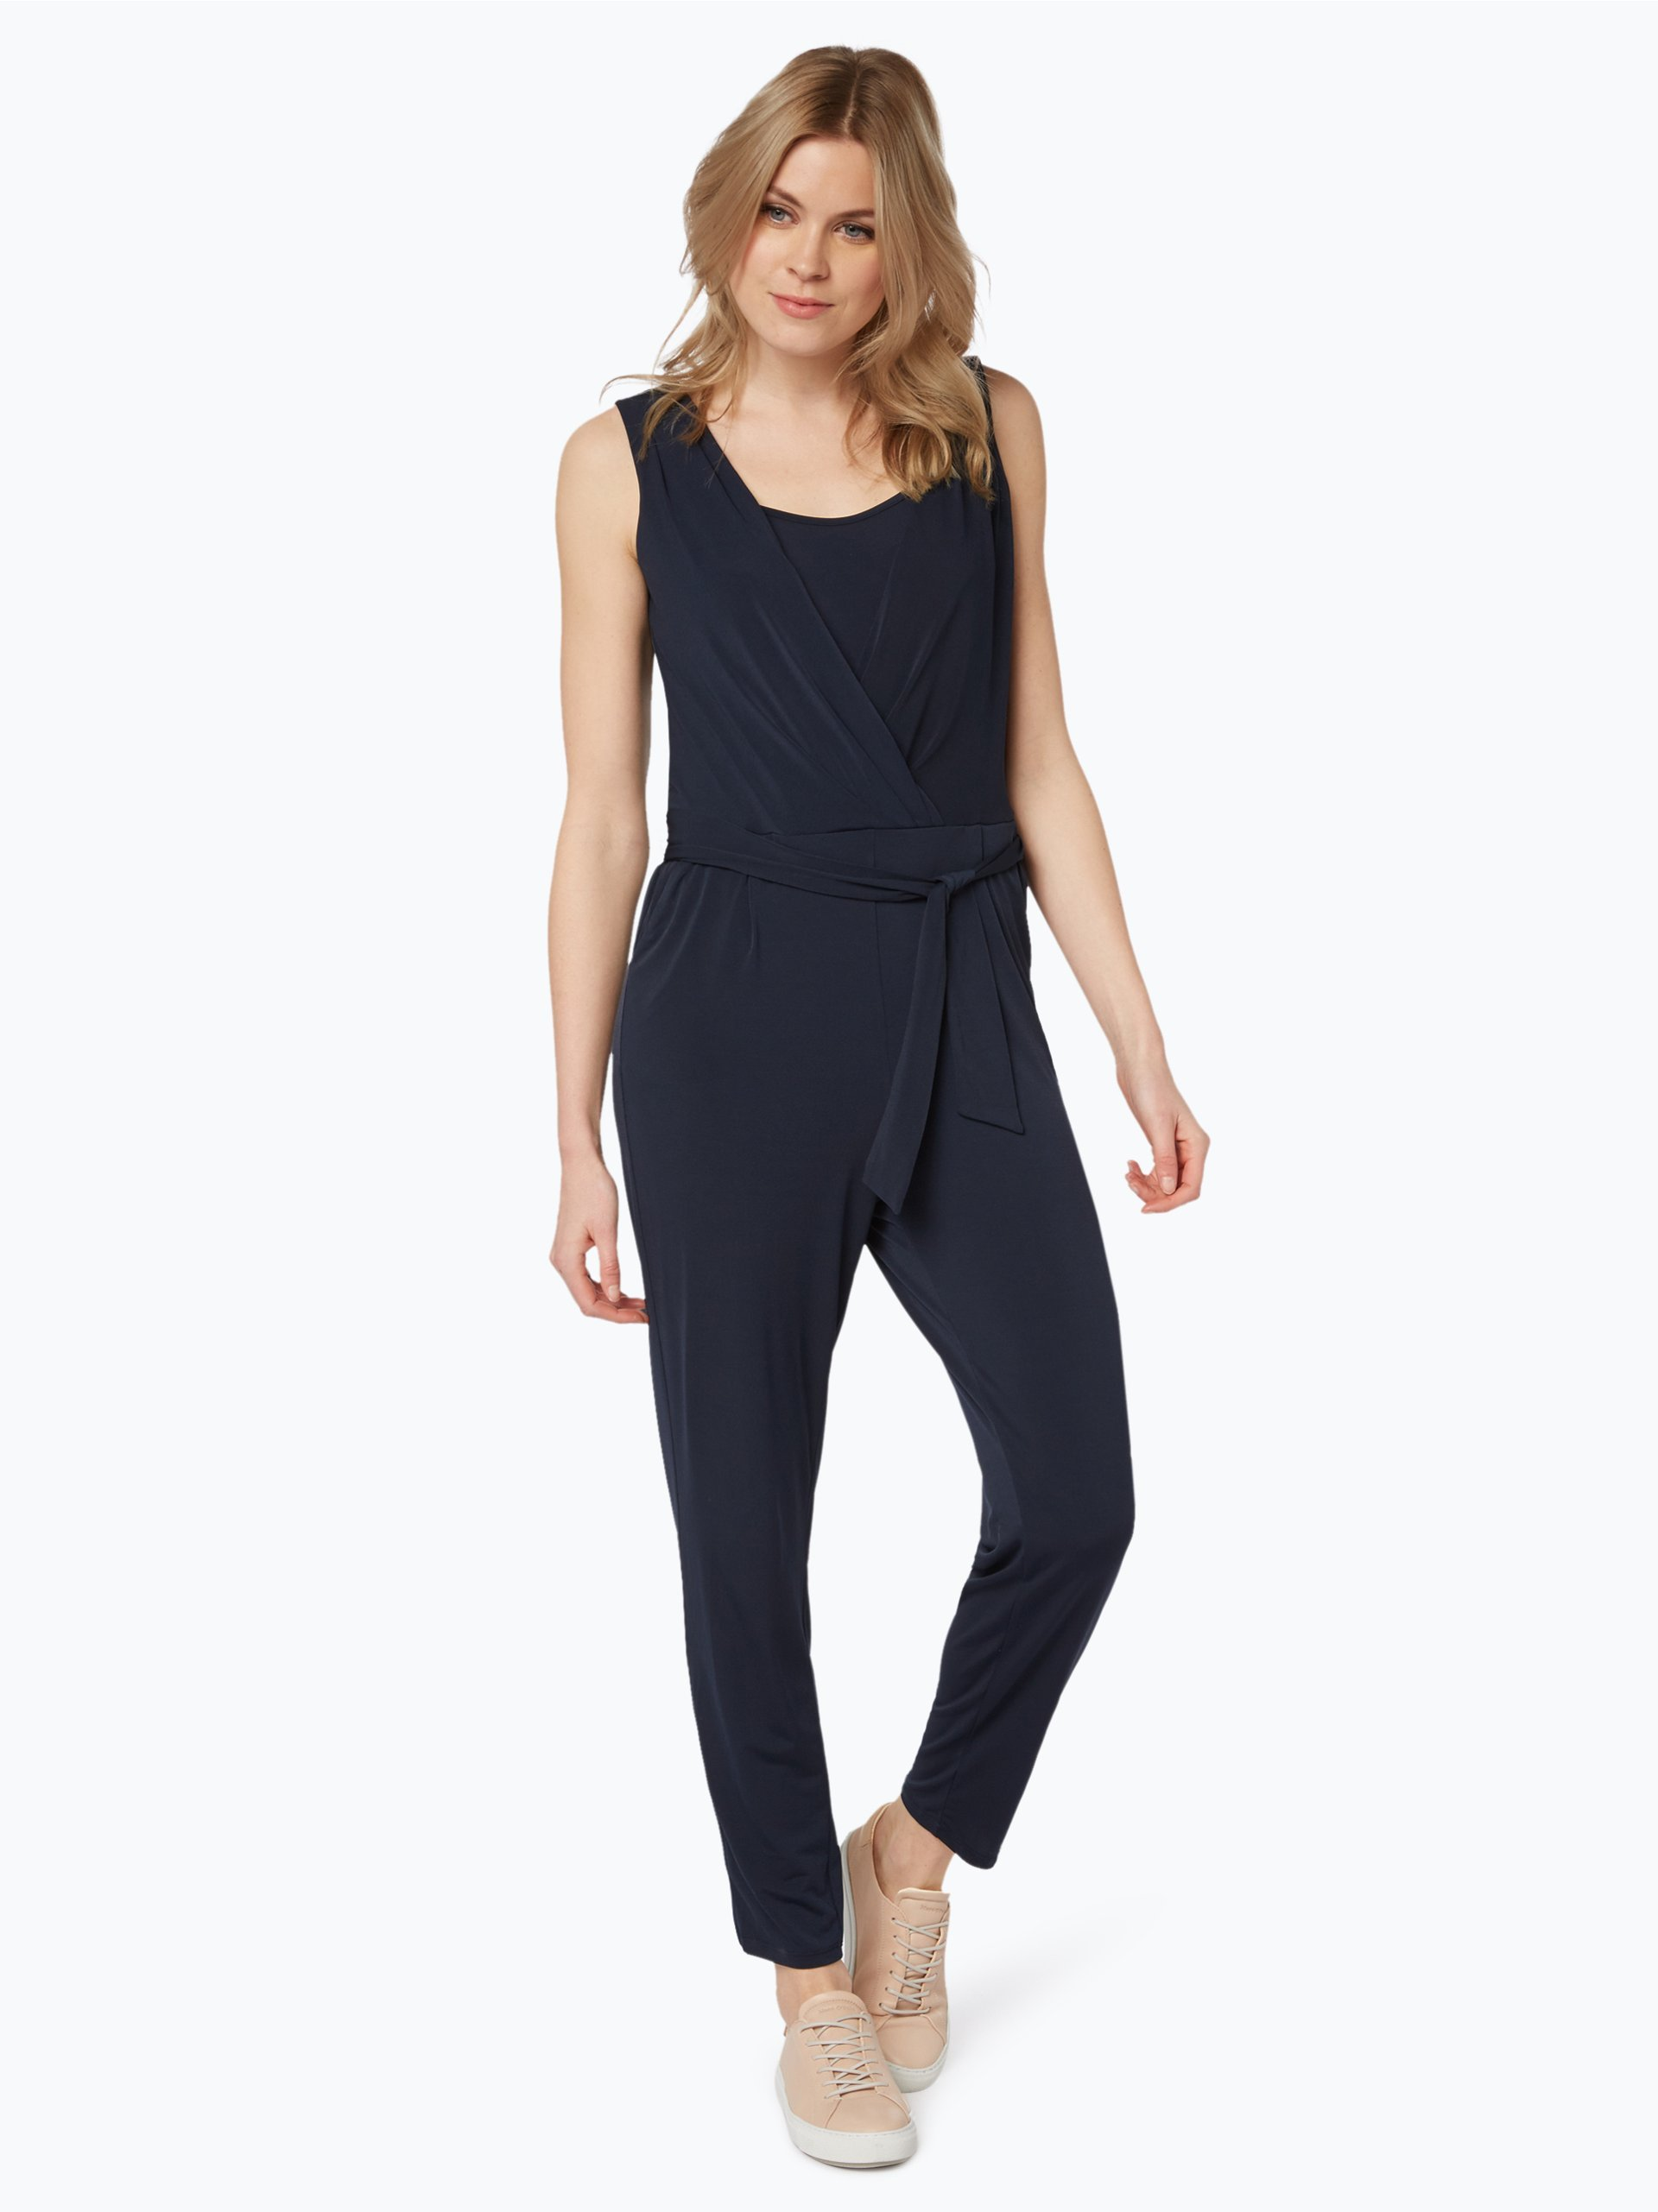 esprit collection damen jumpsuit marine uni online kaufen peek und cloppenburg de. Black Bedroom Furniture Sets. Home Design Ideas